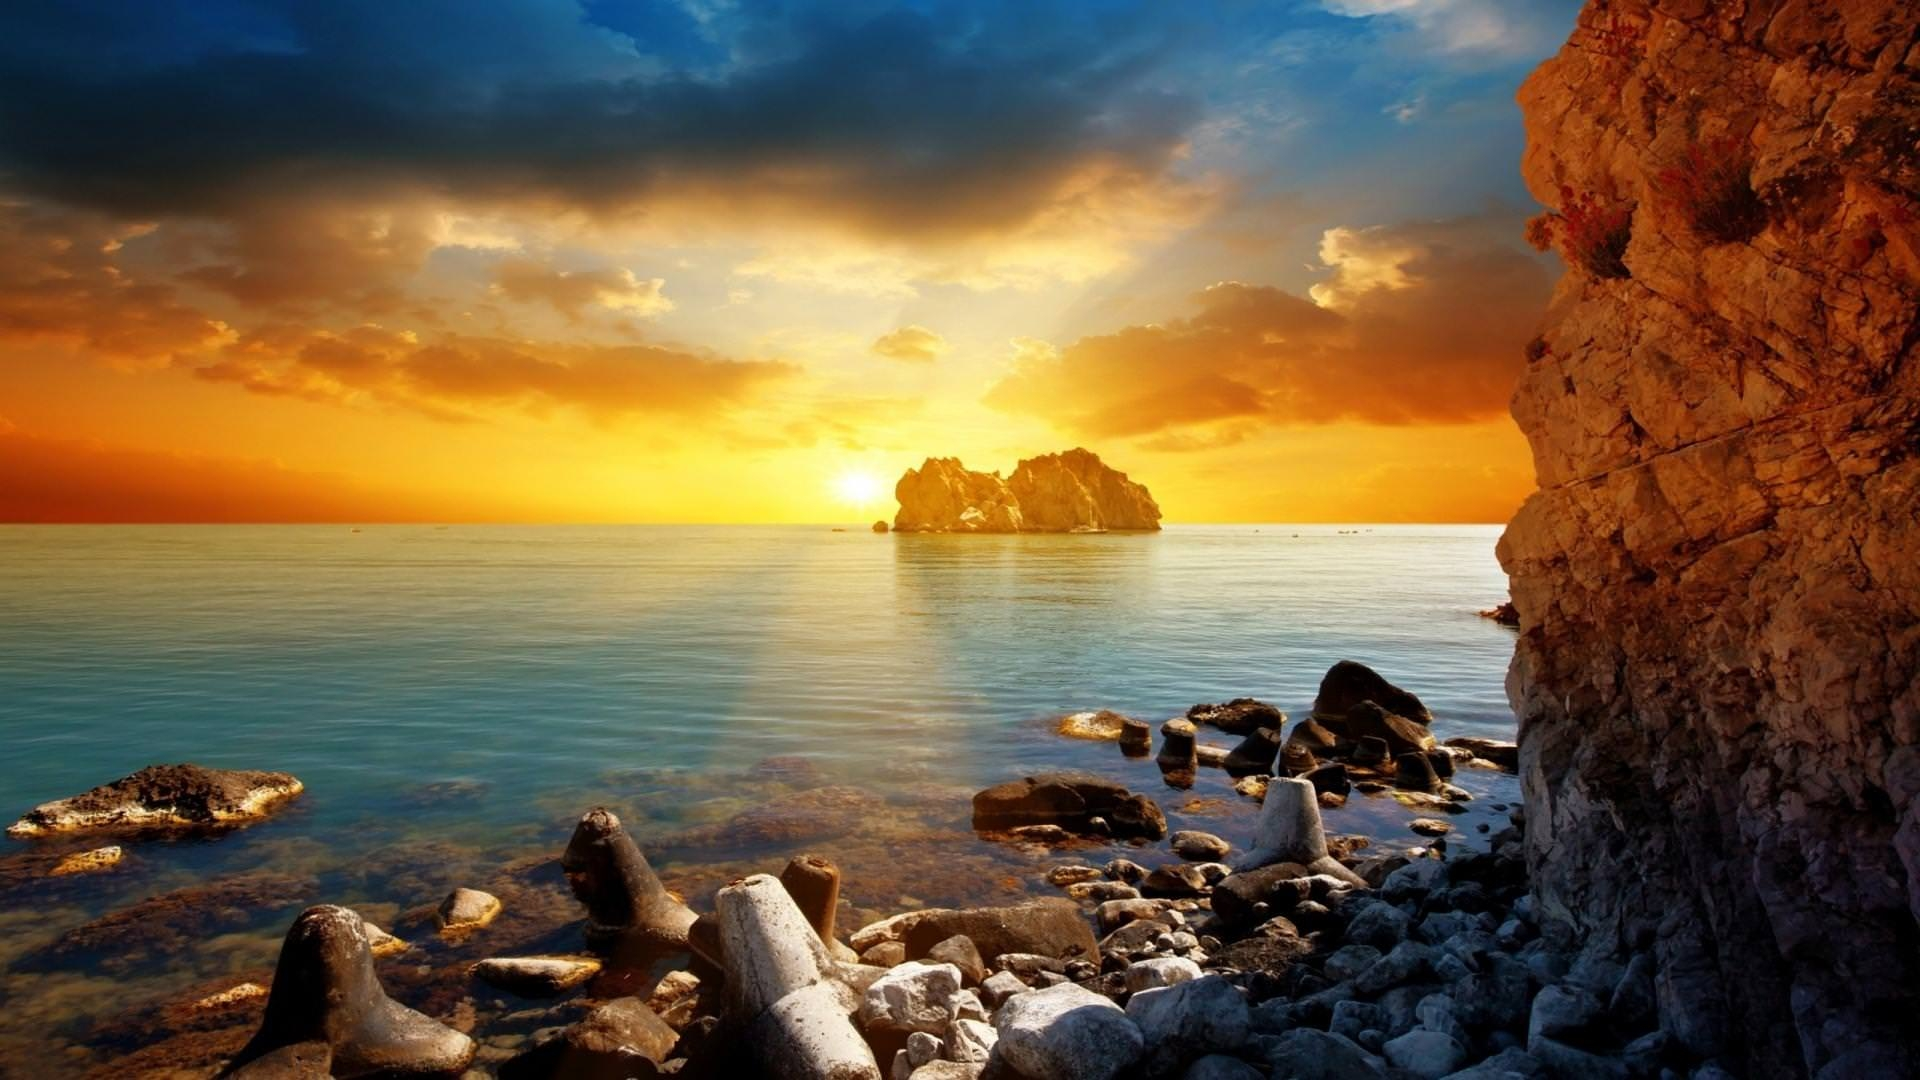 10 best beach sunset desktop wallpapers freecreatives - Ocean pictures for desktop background ...